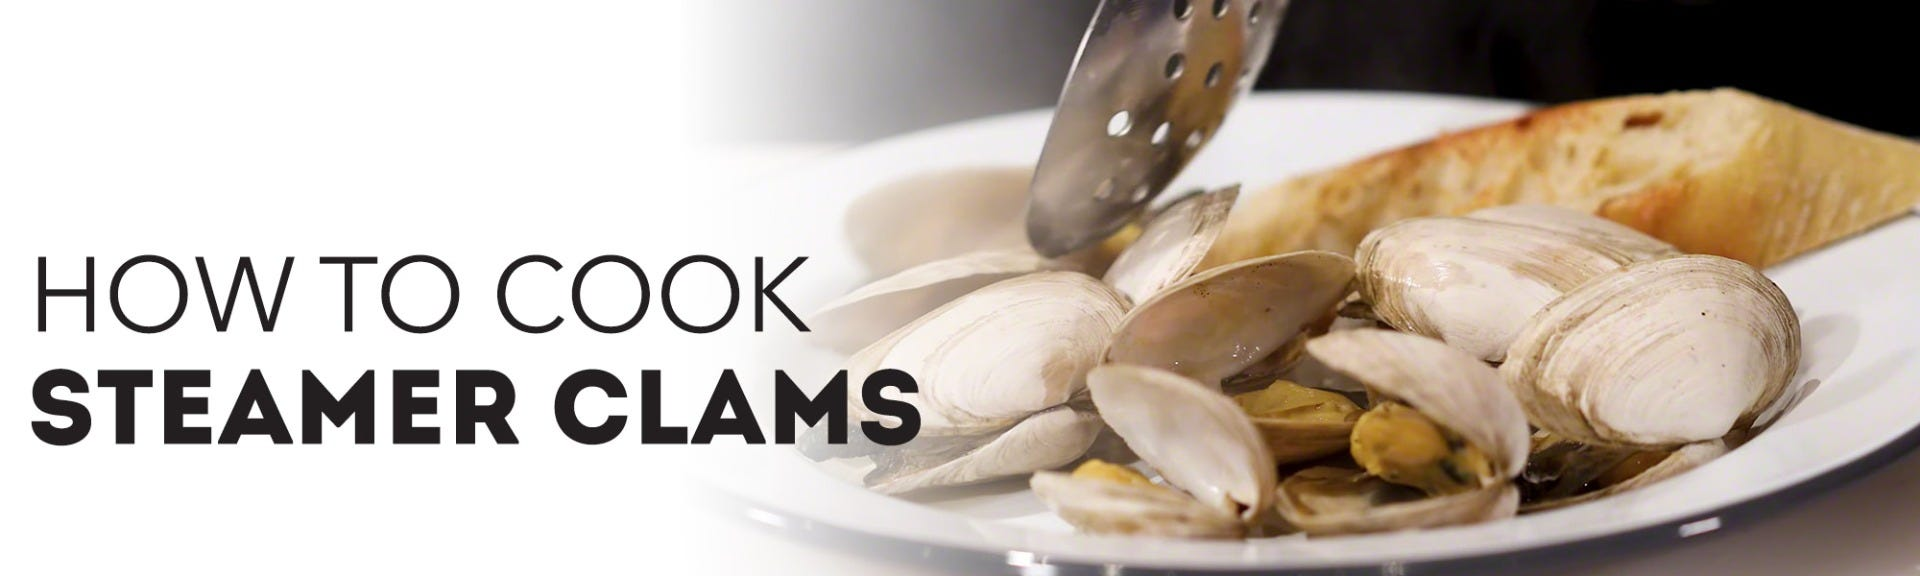 How to cook steamer clams